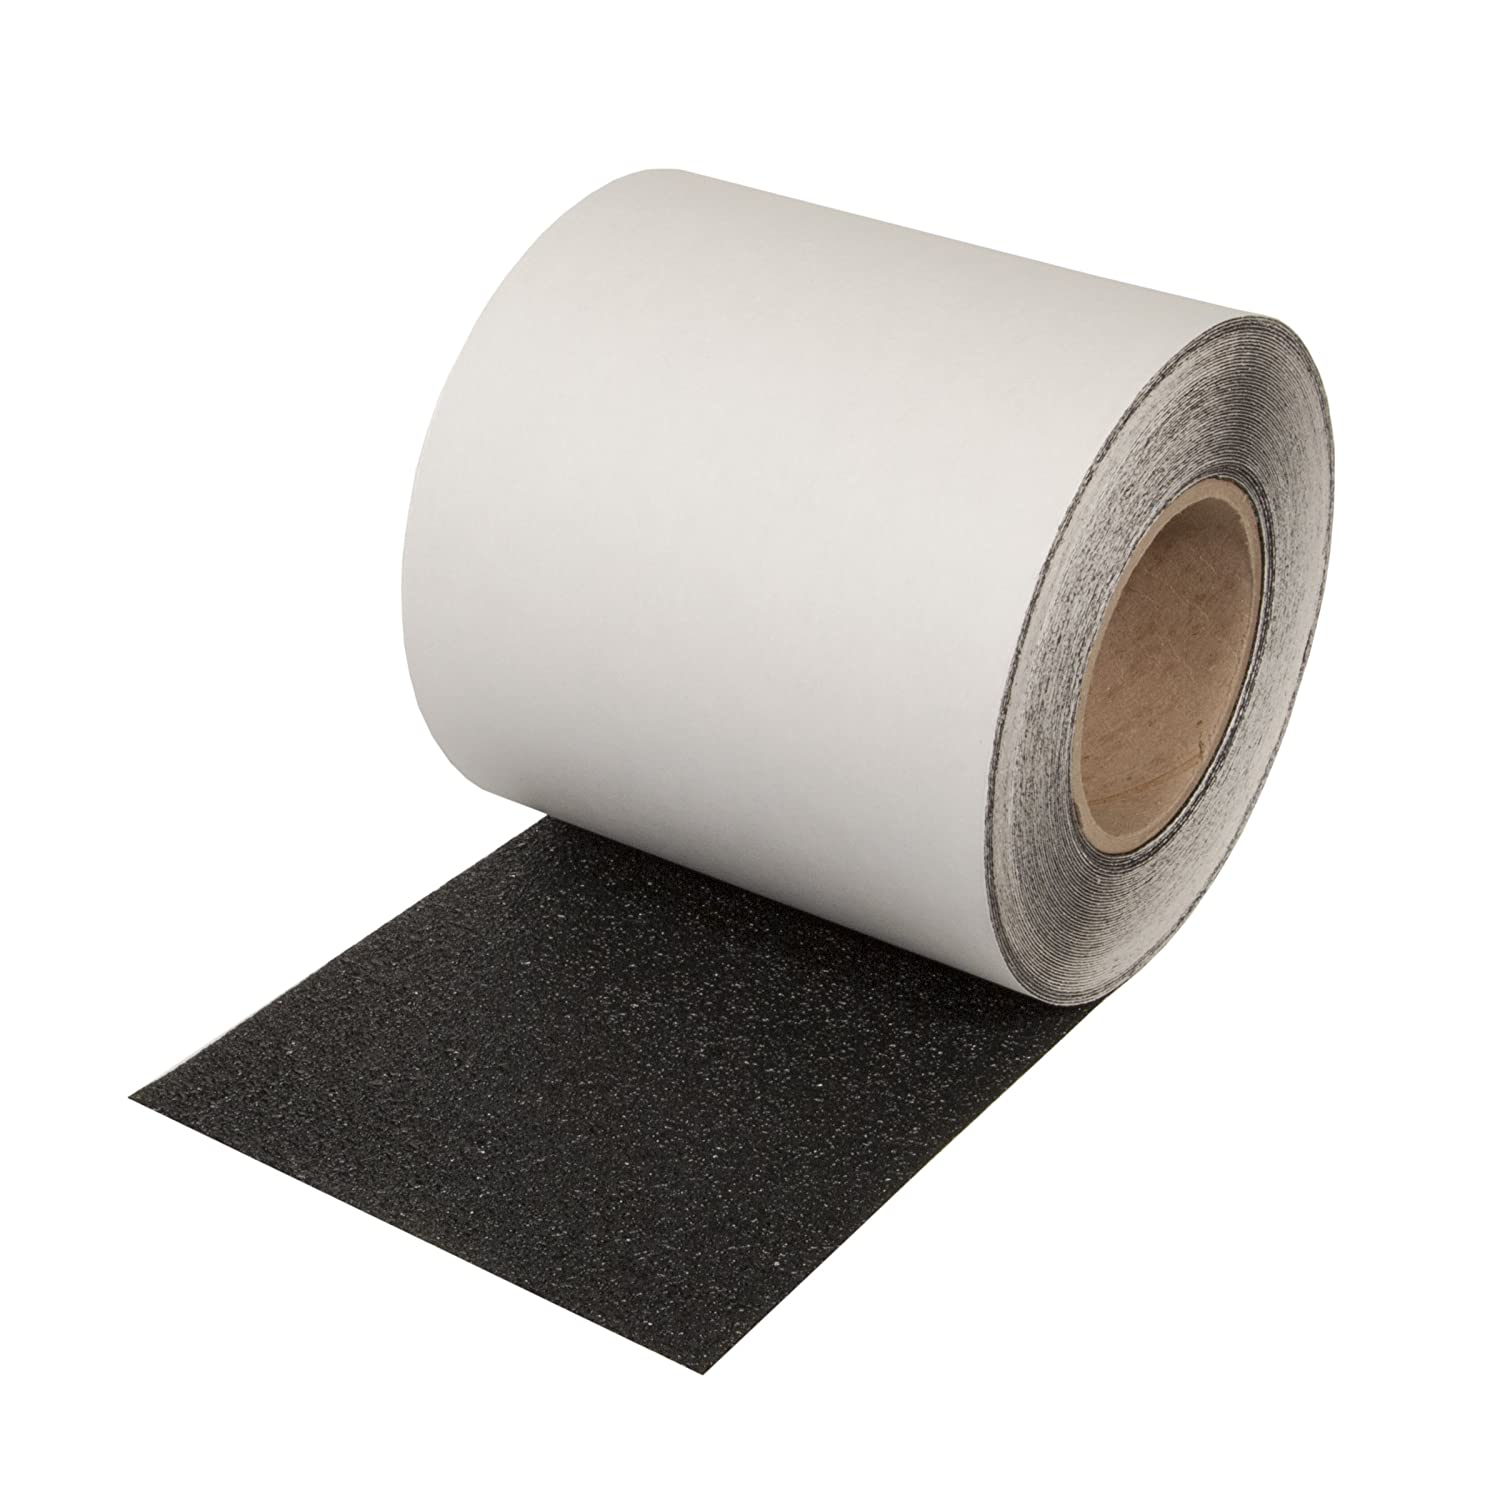 in manufacturing softex vinyl anti slip tape 2 x 60 black